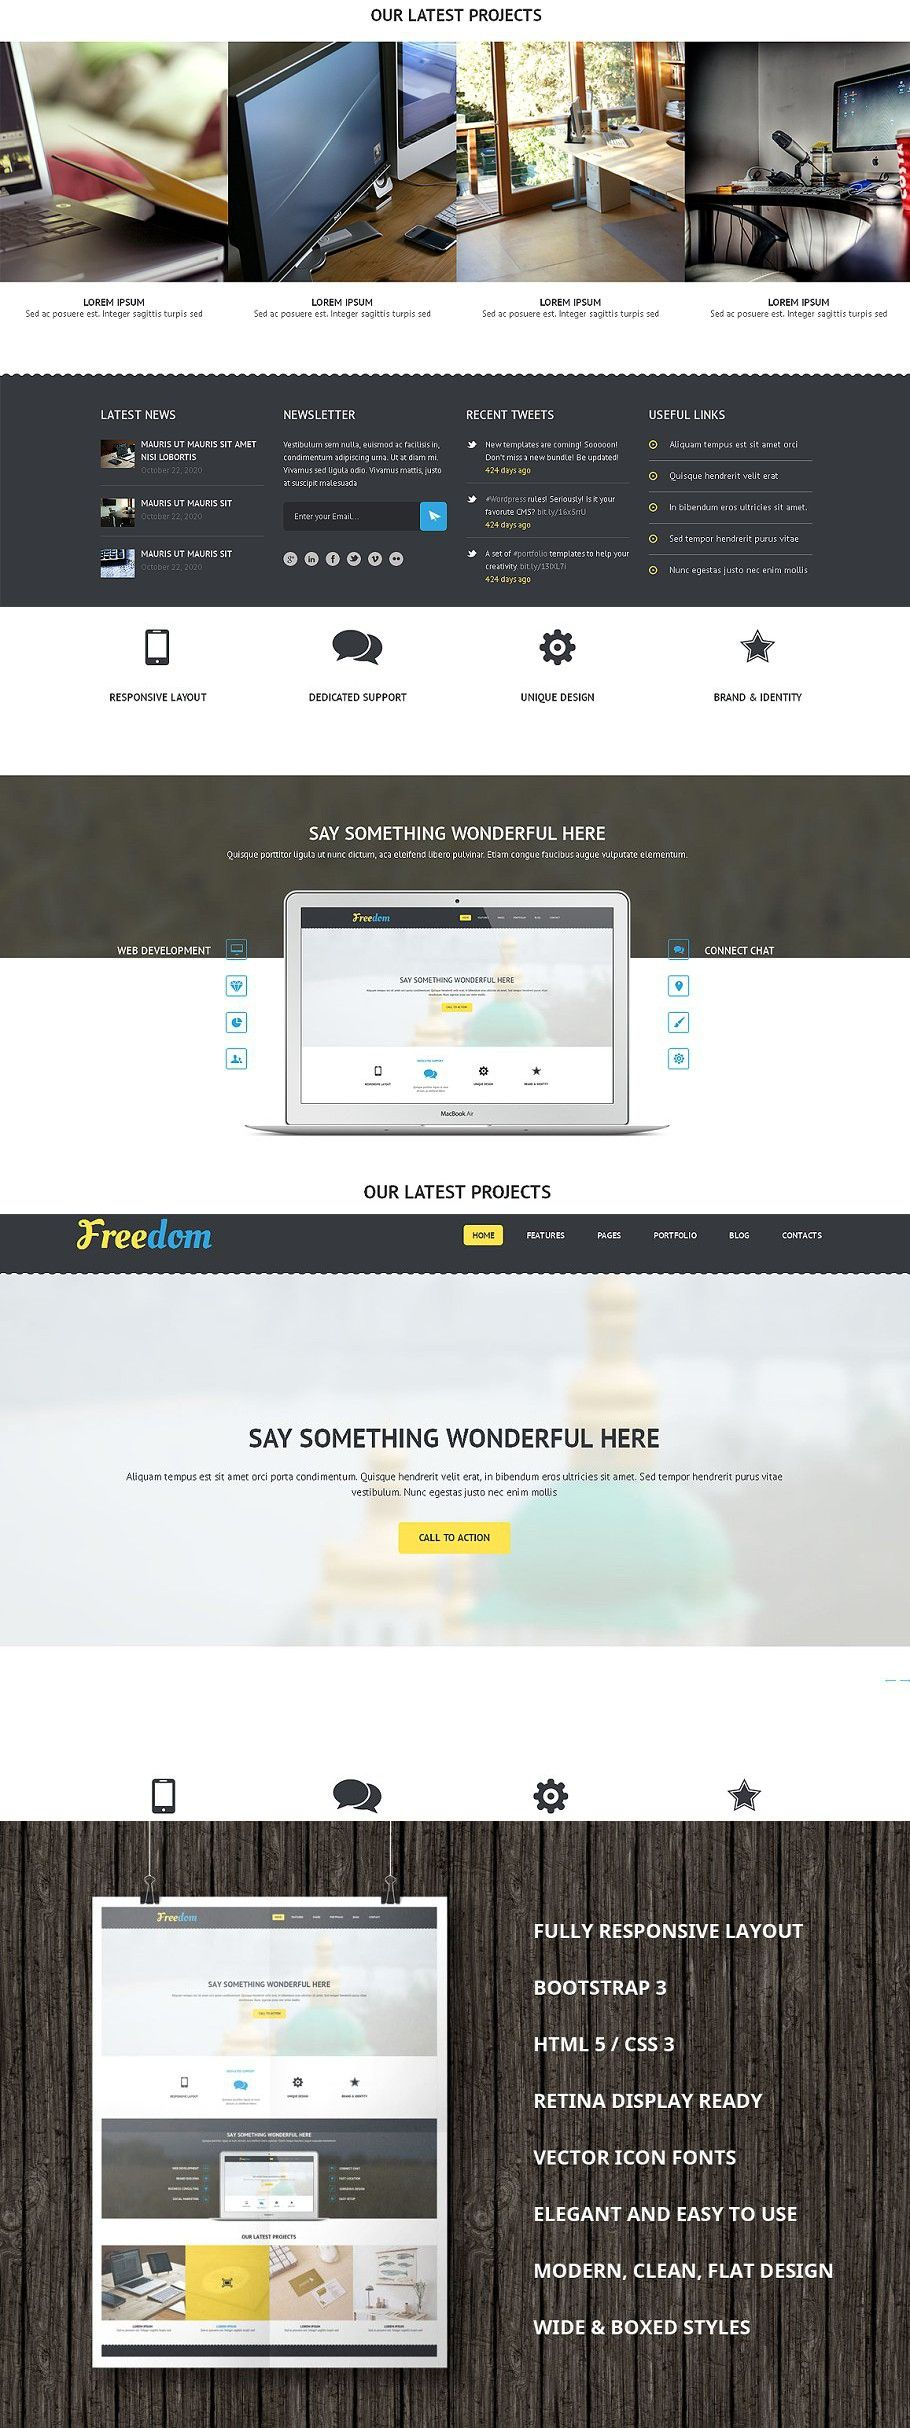 Freedom Bootstrap Template In 2020 Bootstrap Template Web Themes Templates